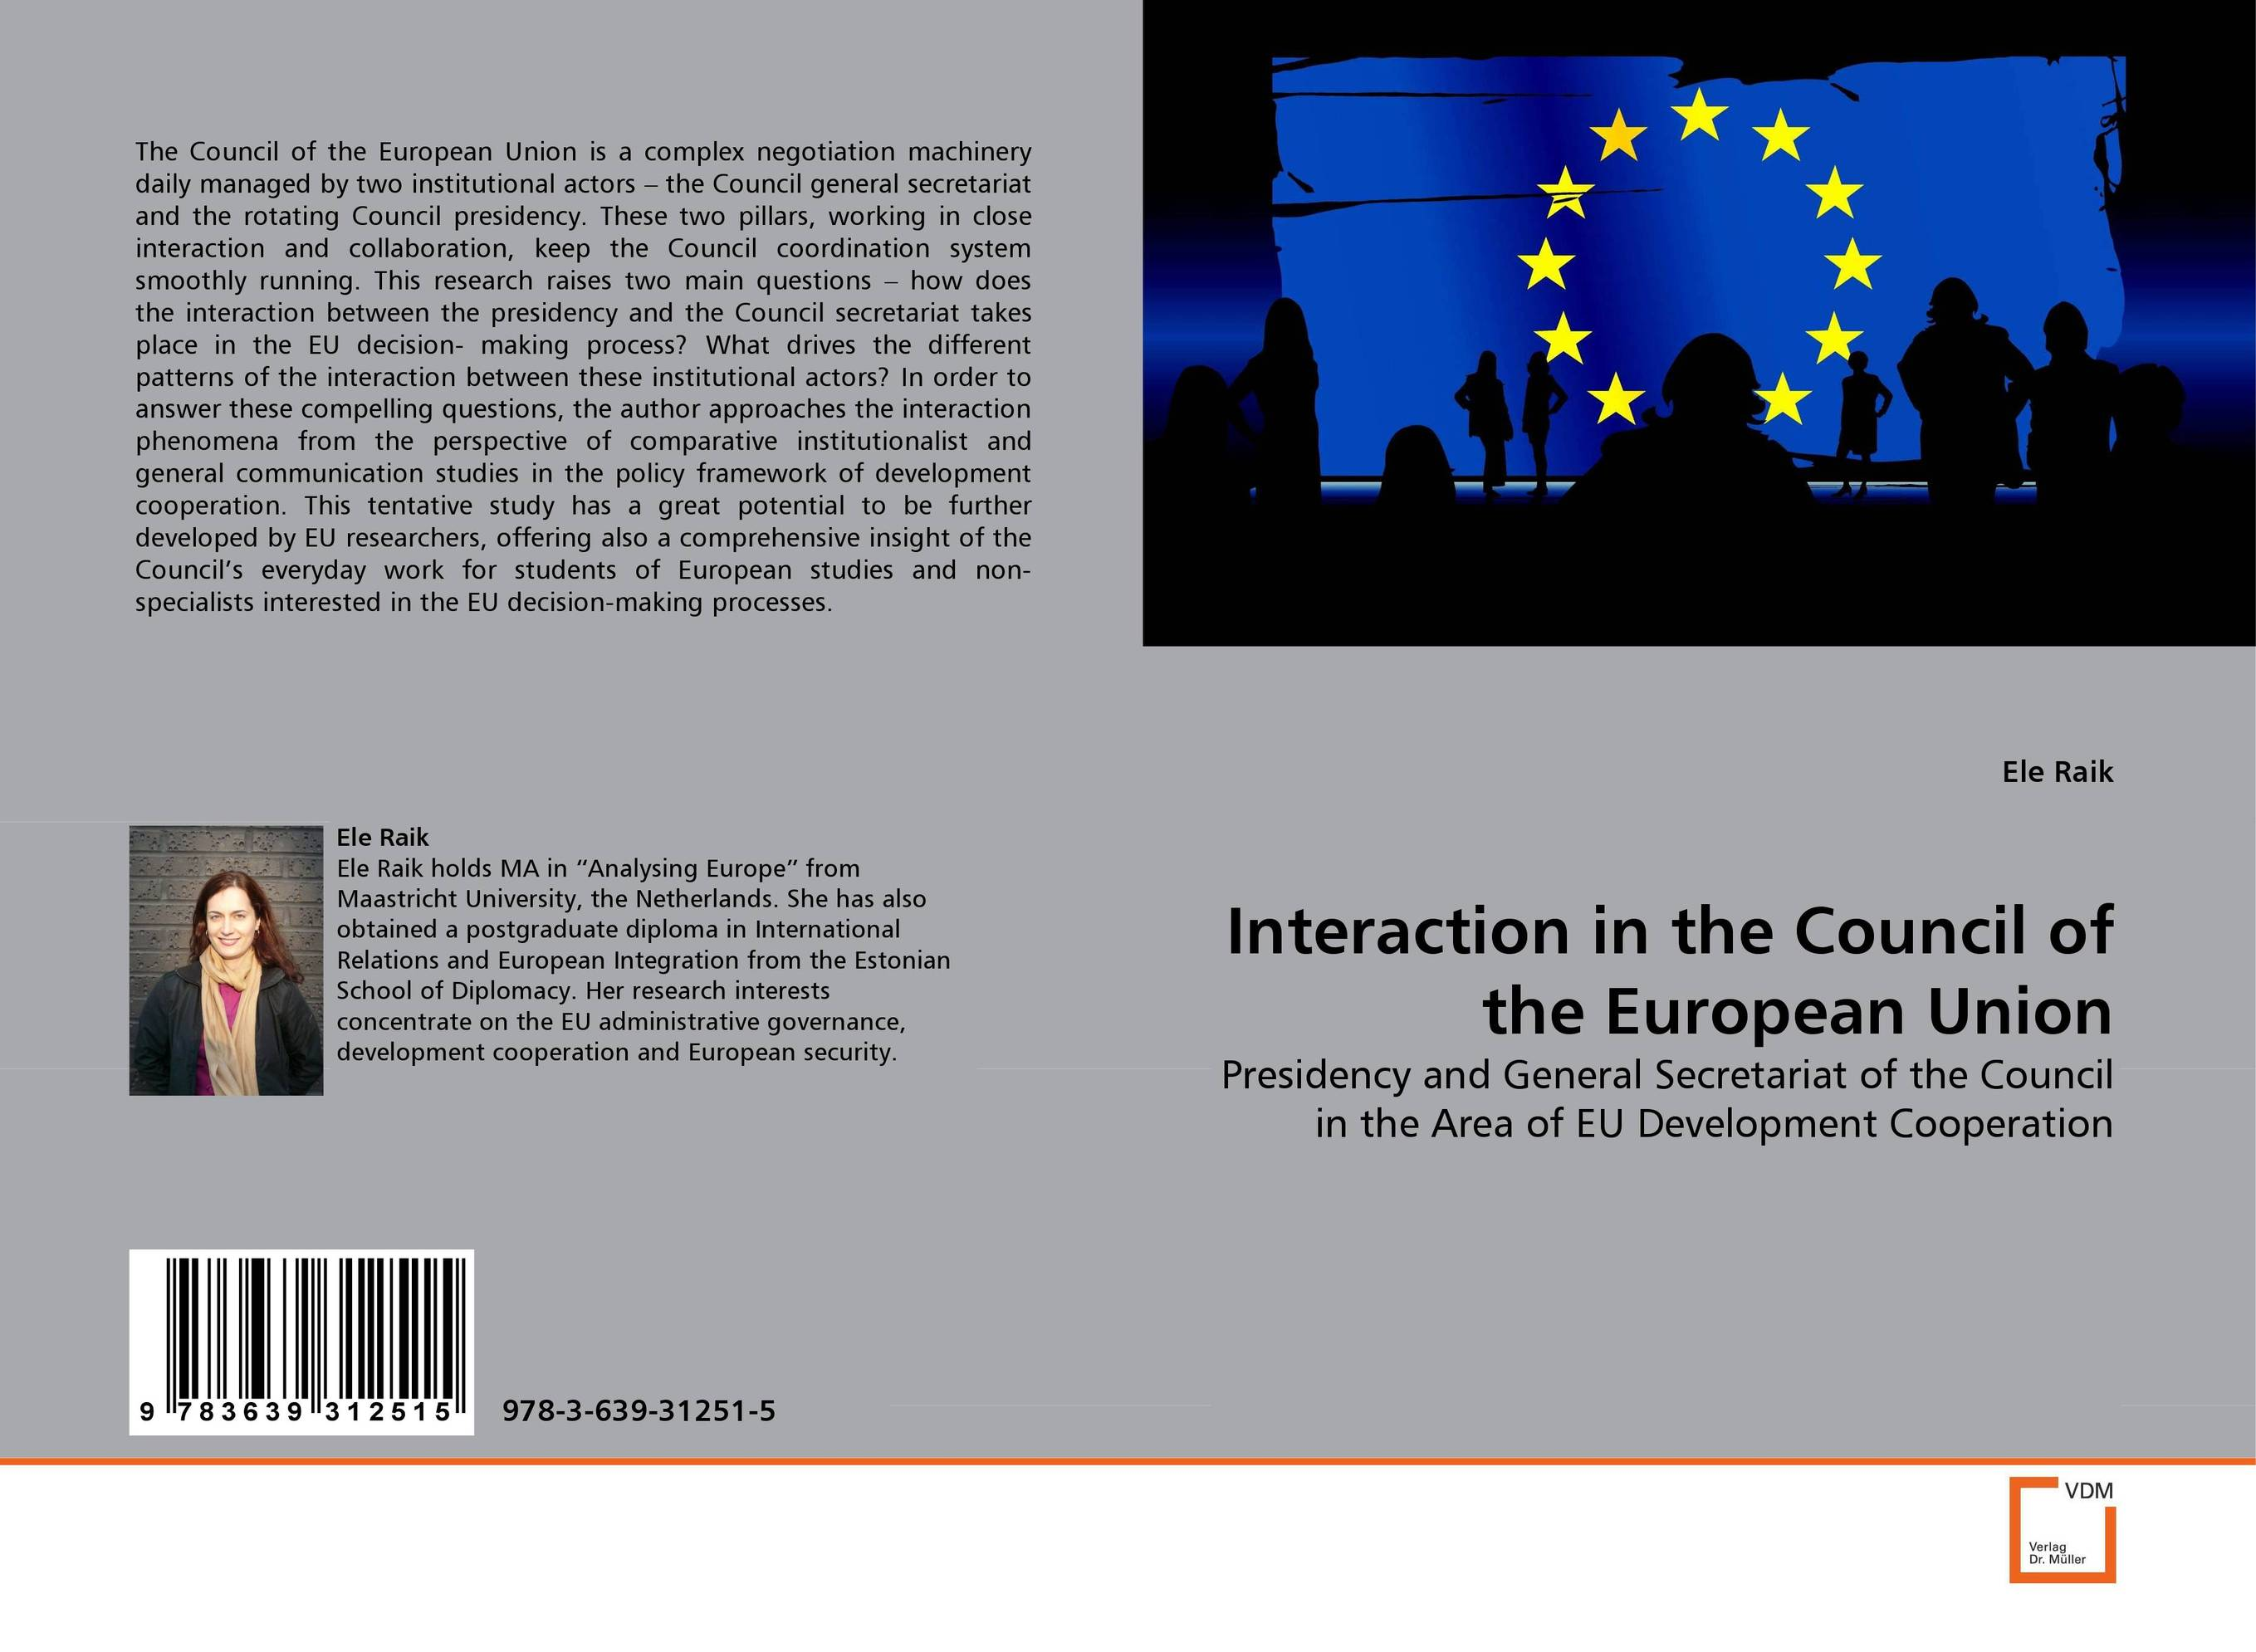 Interaction in the Council of the European Union iron council